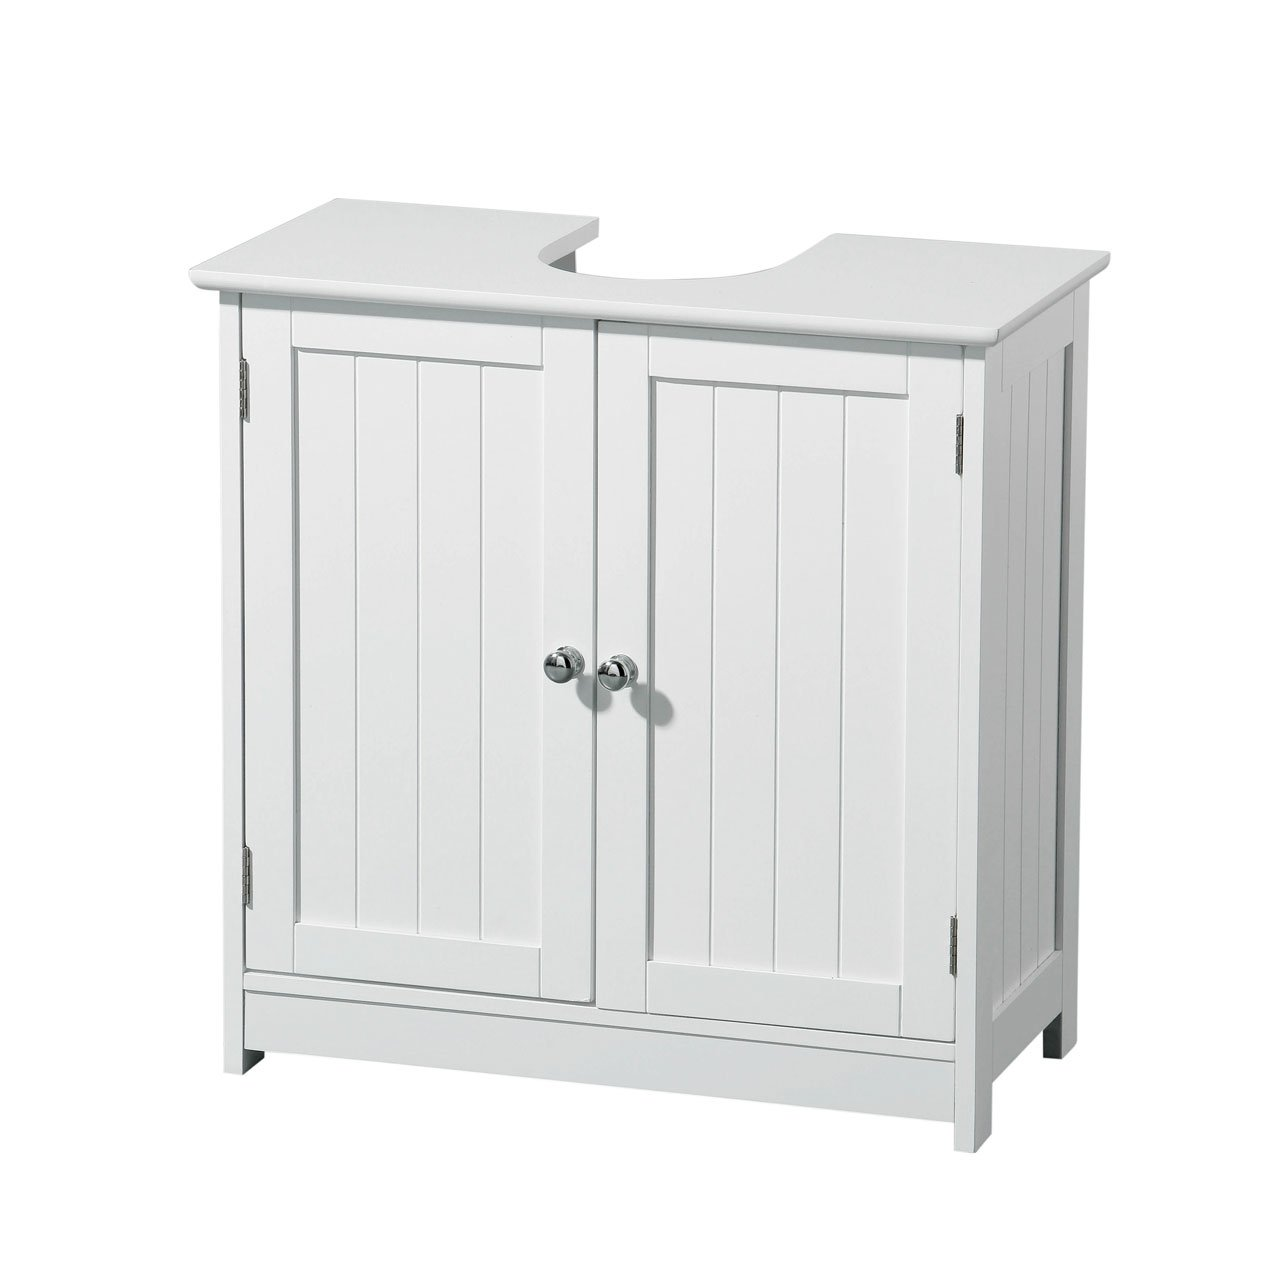 MAINE WHITE BATHROOM MIRRORED SINGLE DOOR DOUBLE DOOR NARROW 1 ...